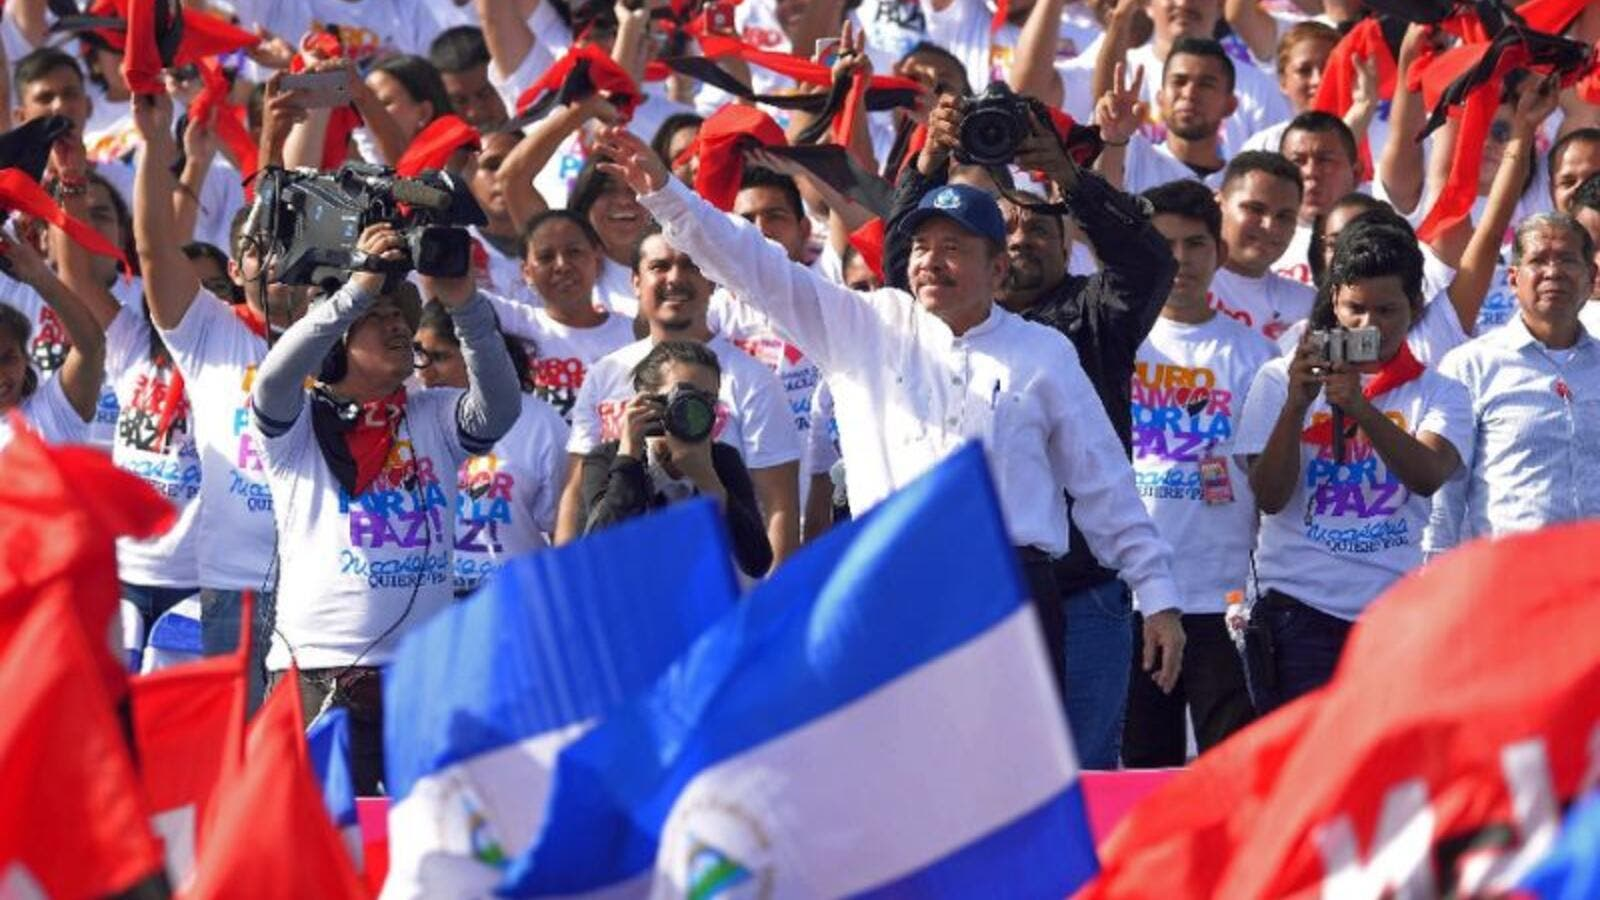 Washington blames Nicaragua's President Daniel Ortega for the deadly unrest that has left more than 300 dead (AFP/MARVIN RECINOS)